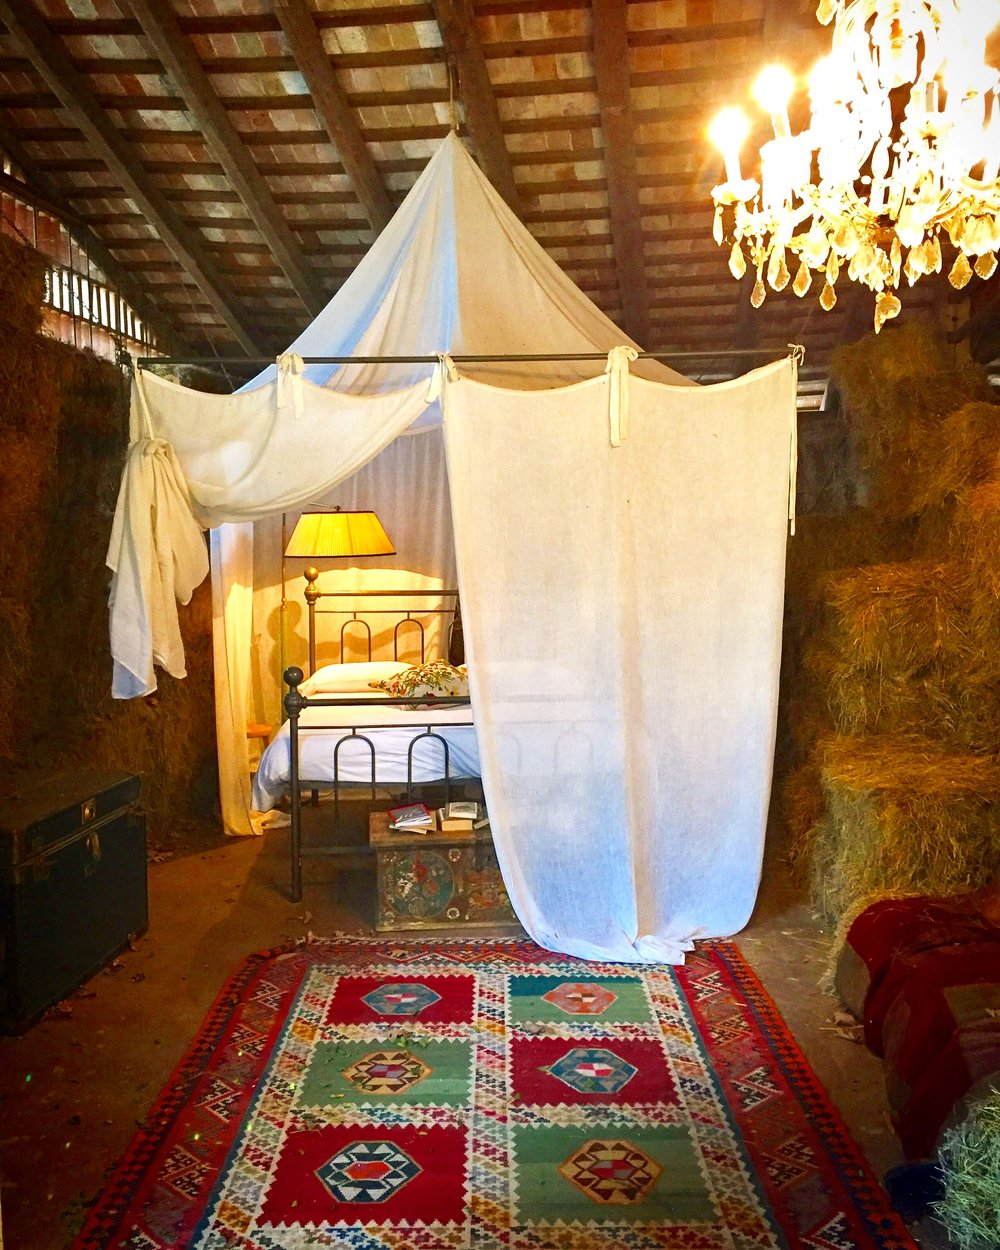 The barn suite at La Subida